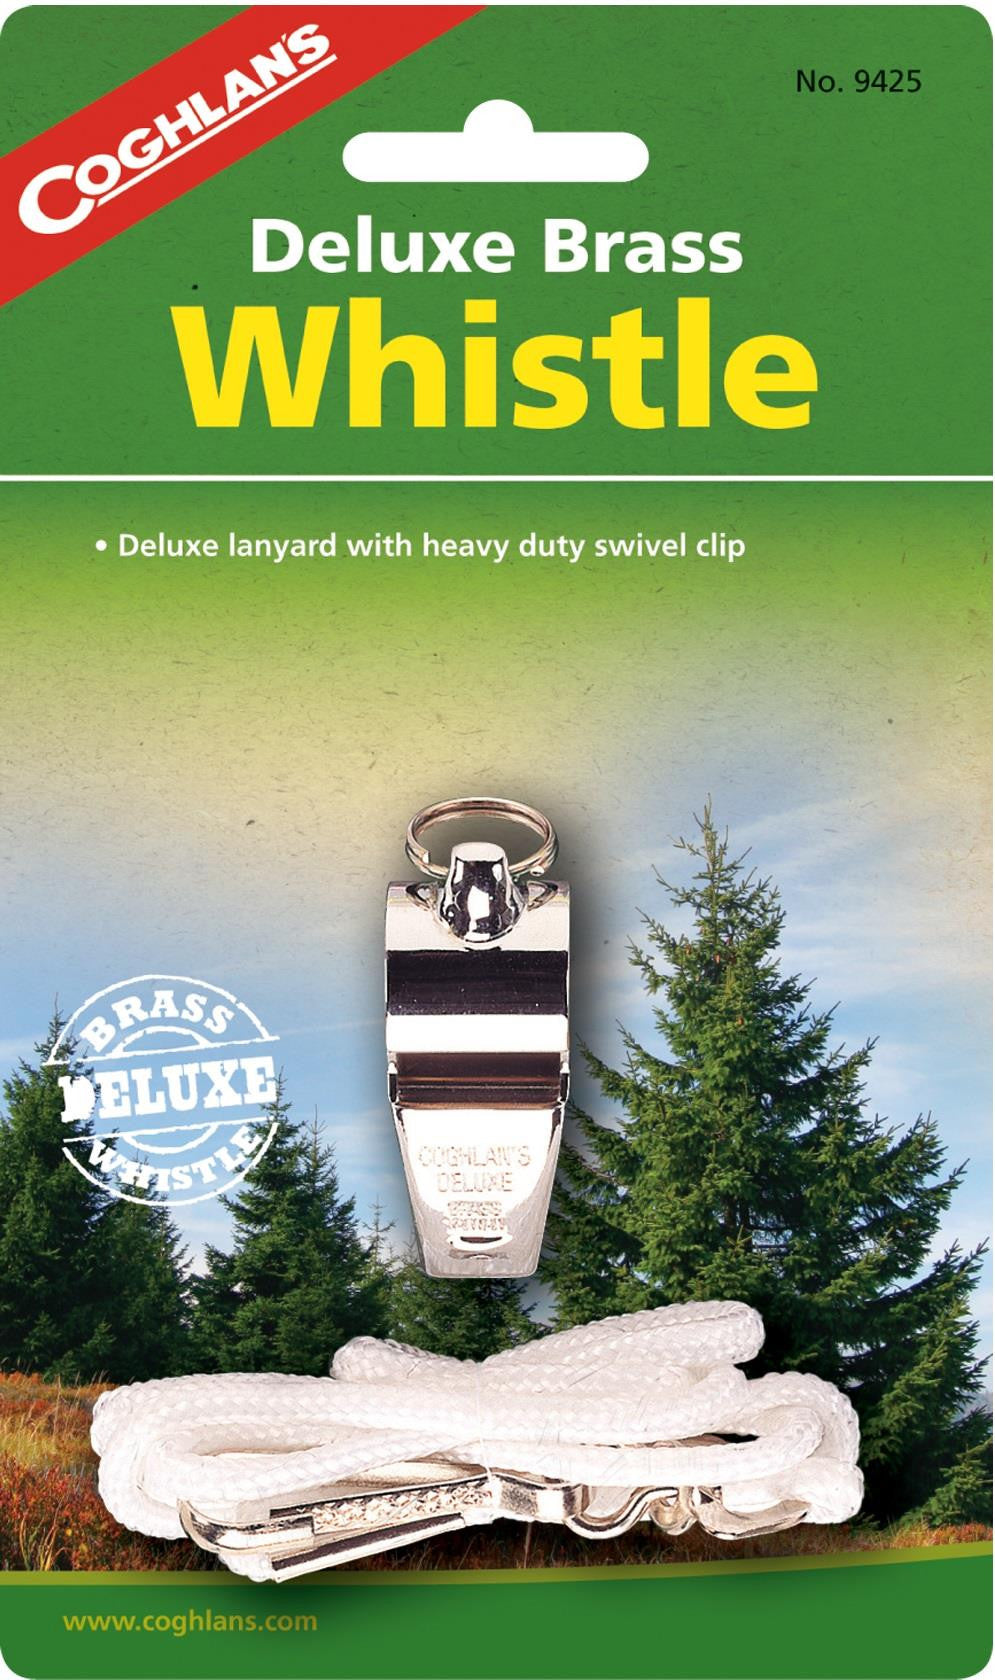 Coghlan's Deluxe Brass Whistle